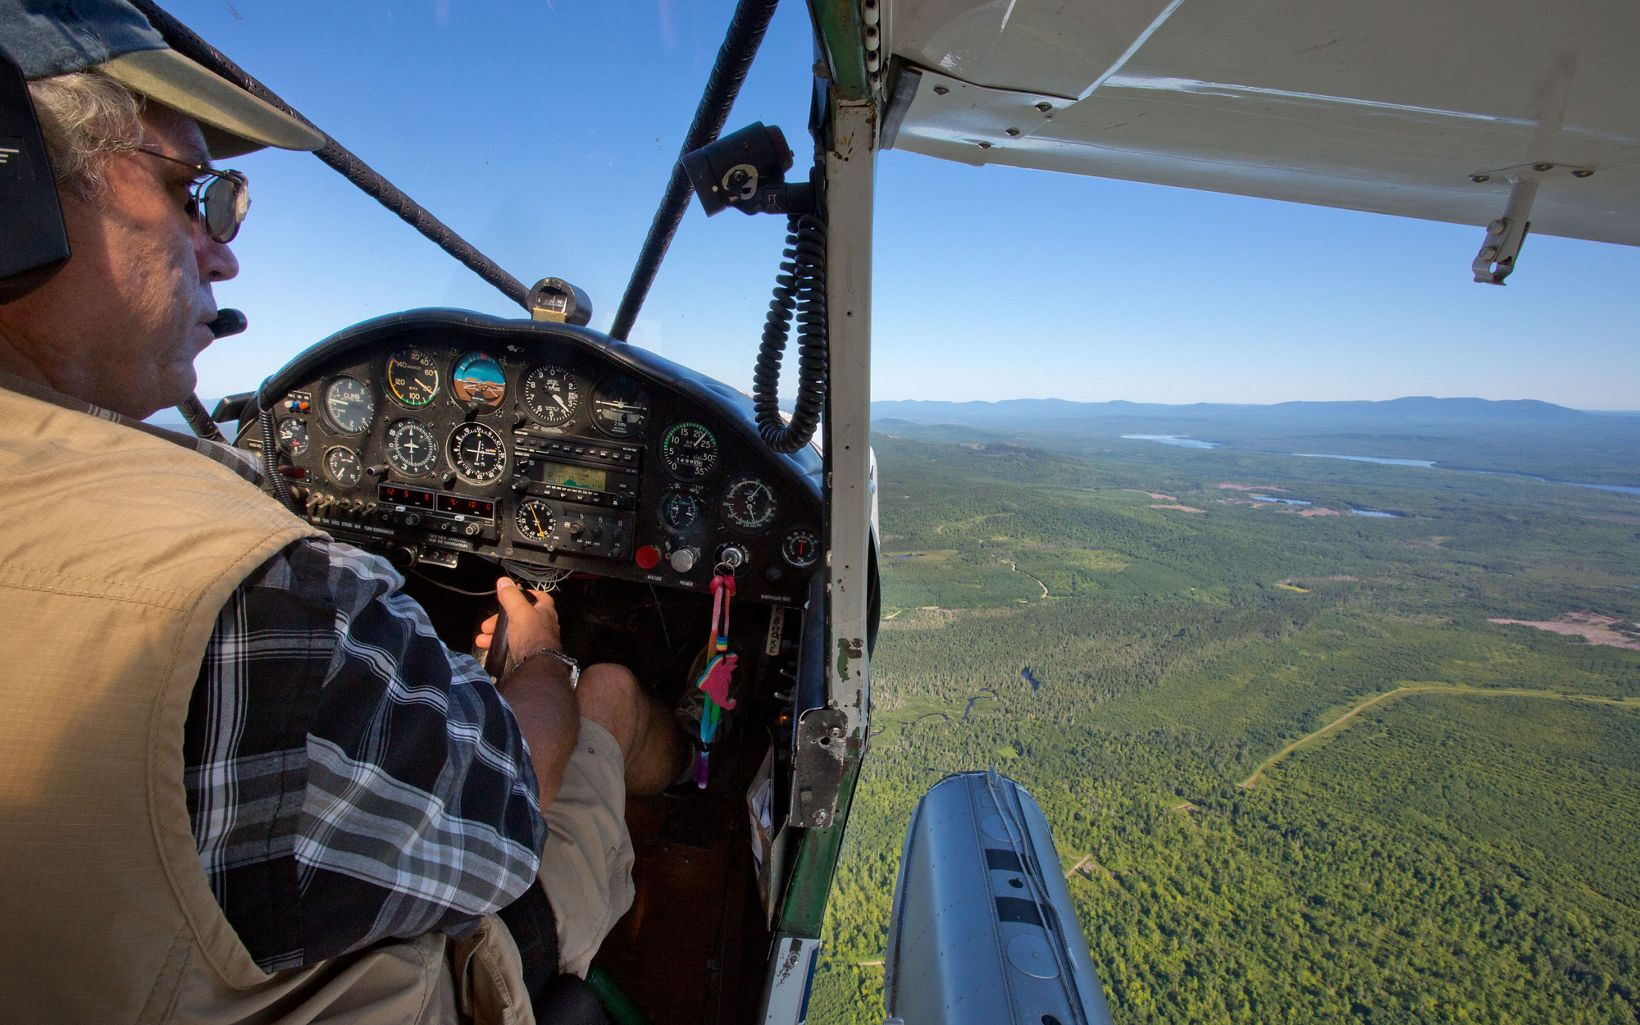 A birds eye view of the Maine landscape from the seat of a plane.